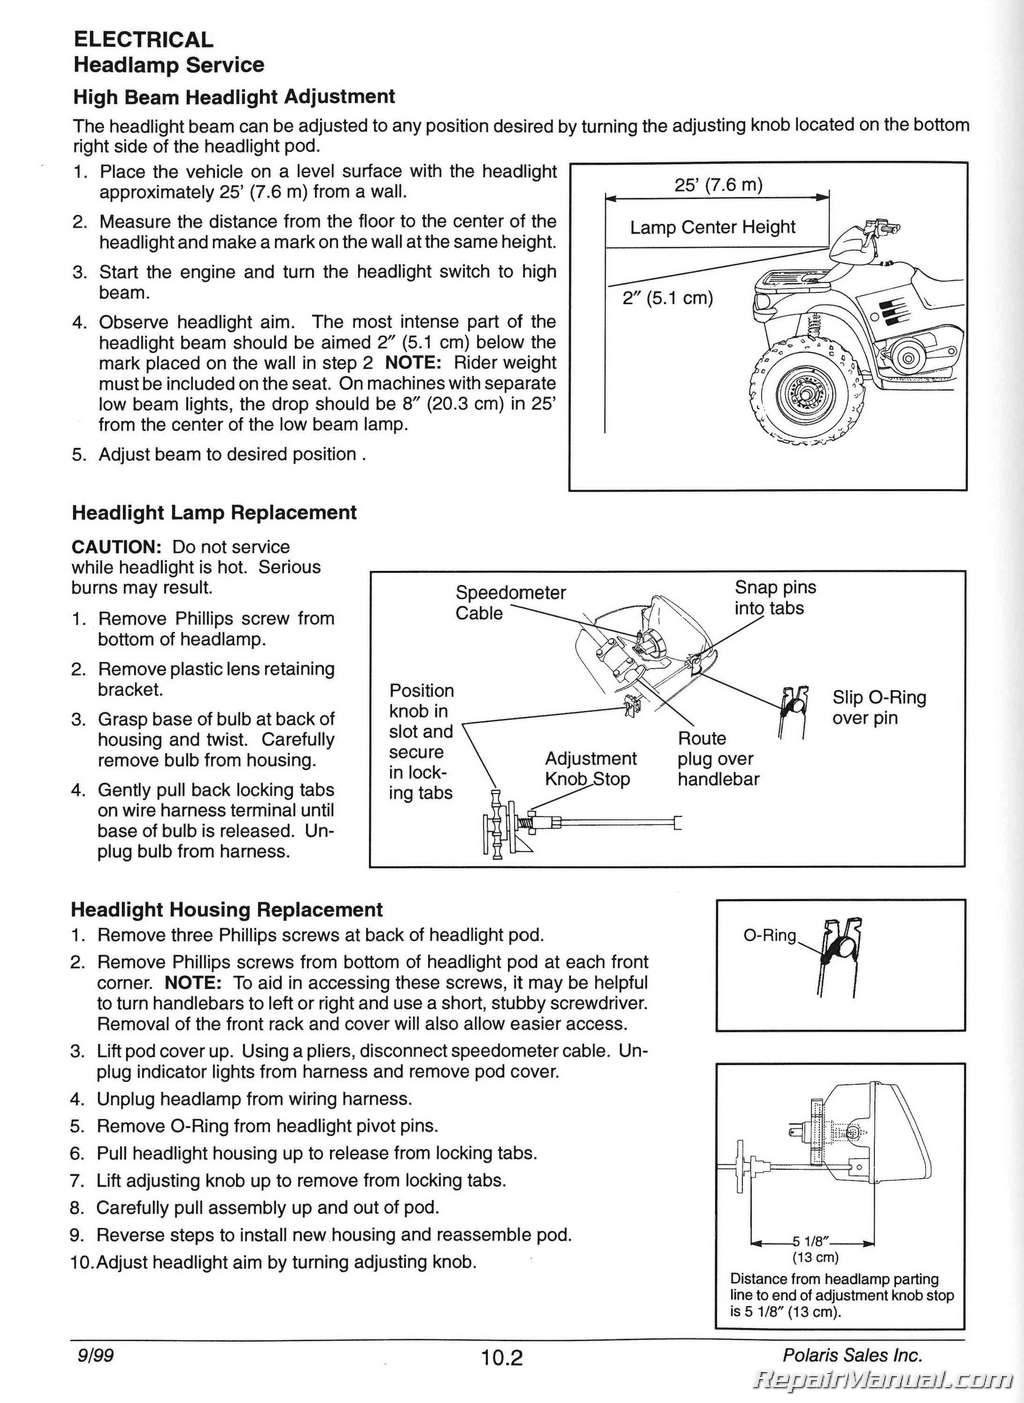 30c9 2000 Polaris 335 Wiring Diagram Wiring Library